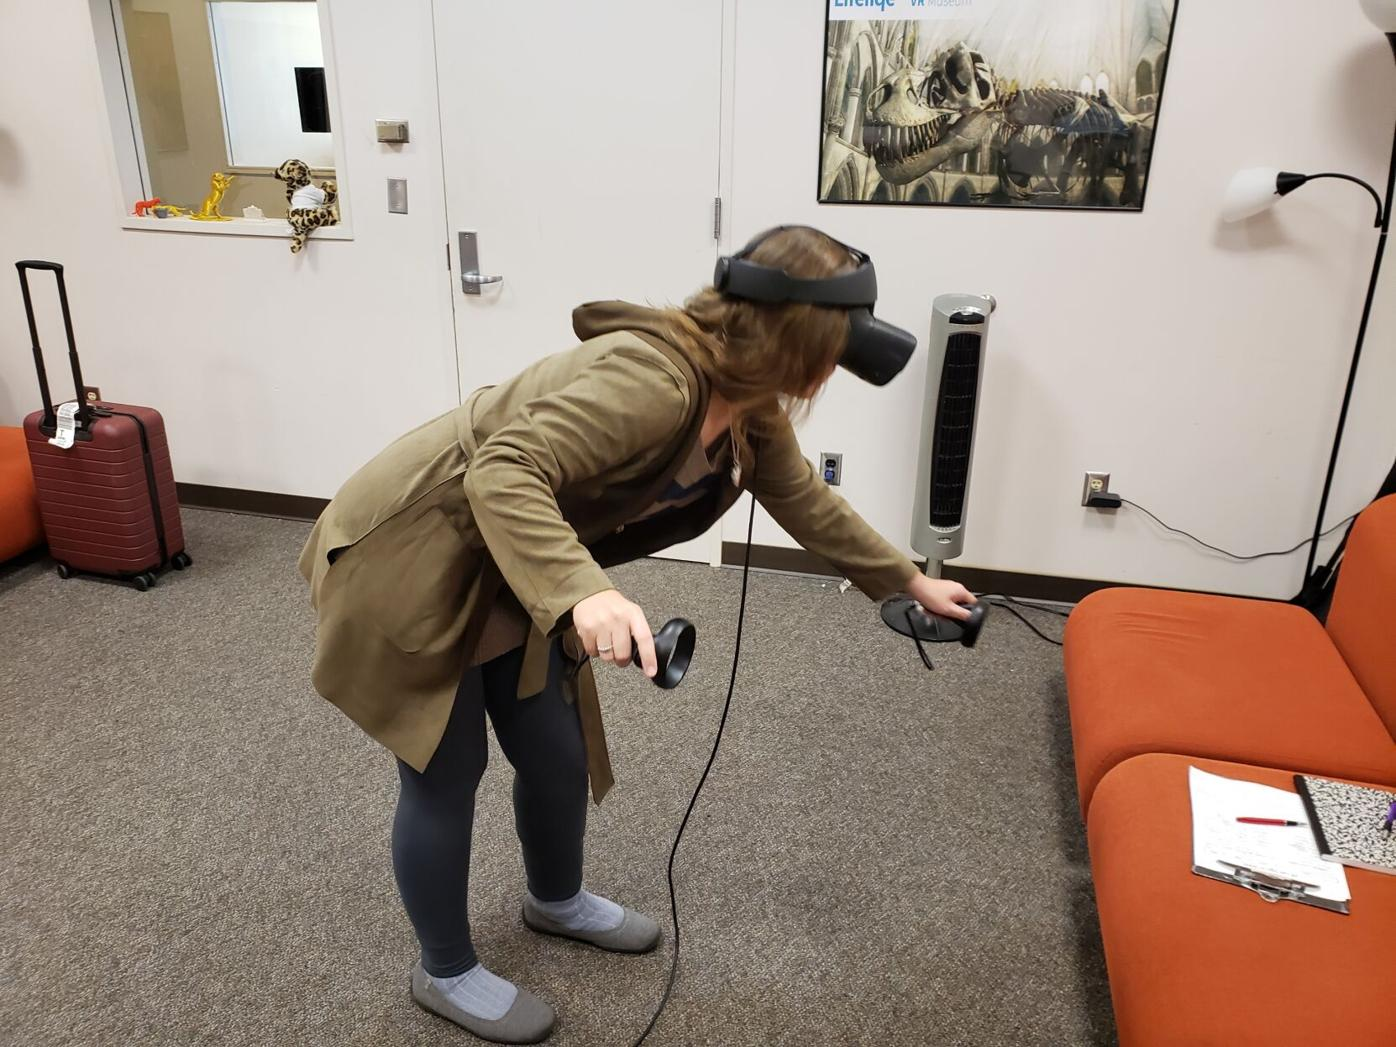 Elizabeth Thill with VR headset